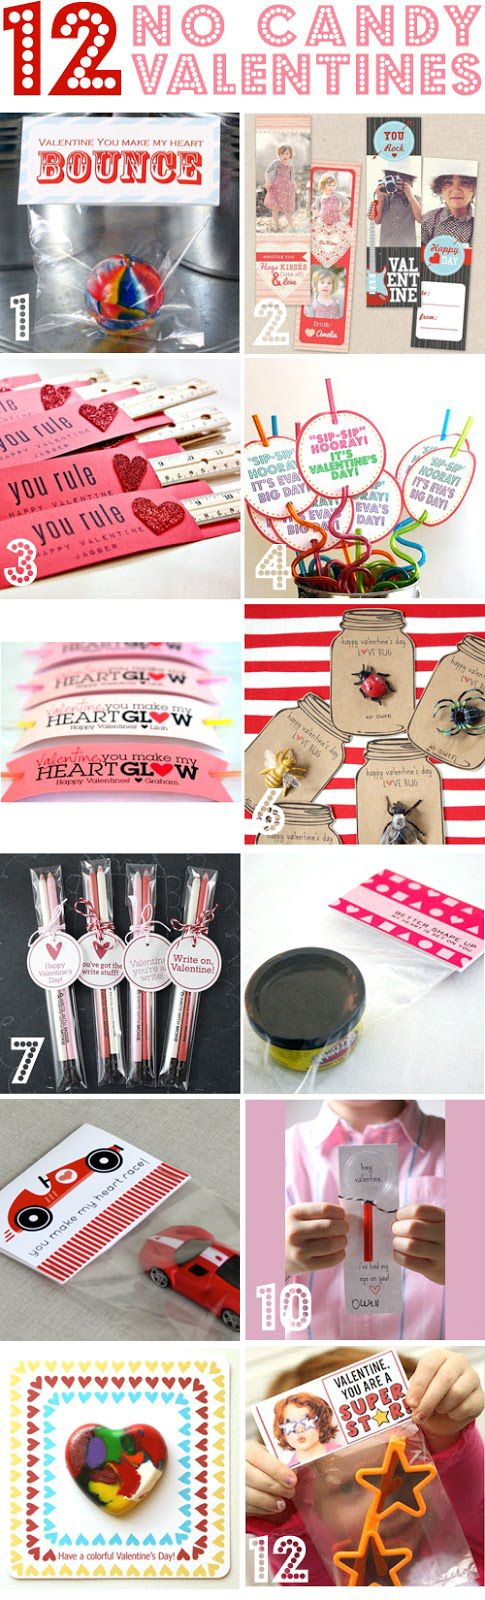 12 No-Candy Valentines for kids.  A list curated by Plucky Momo.